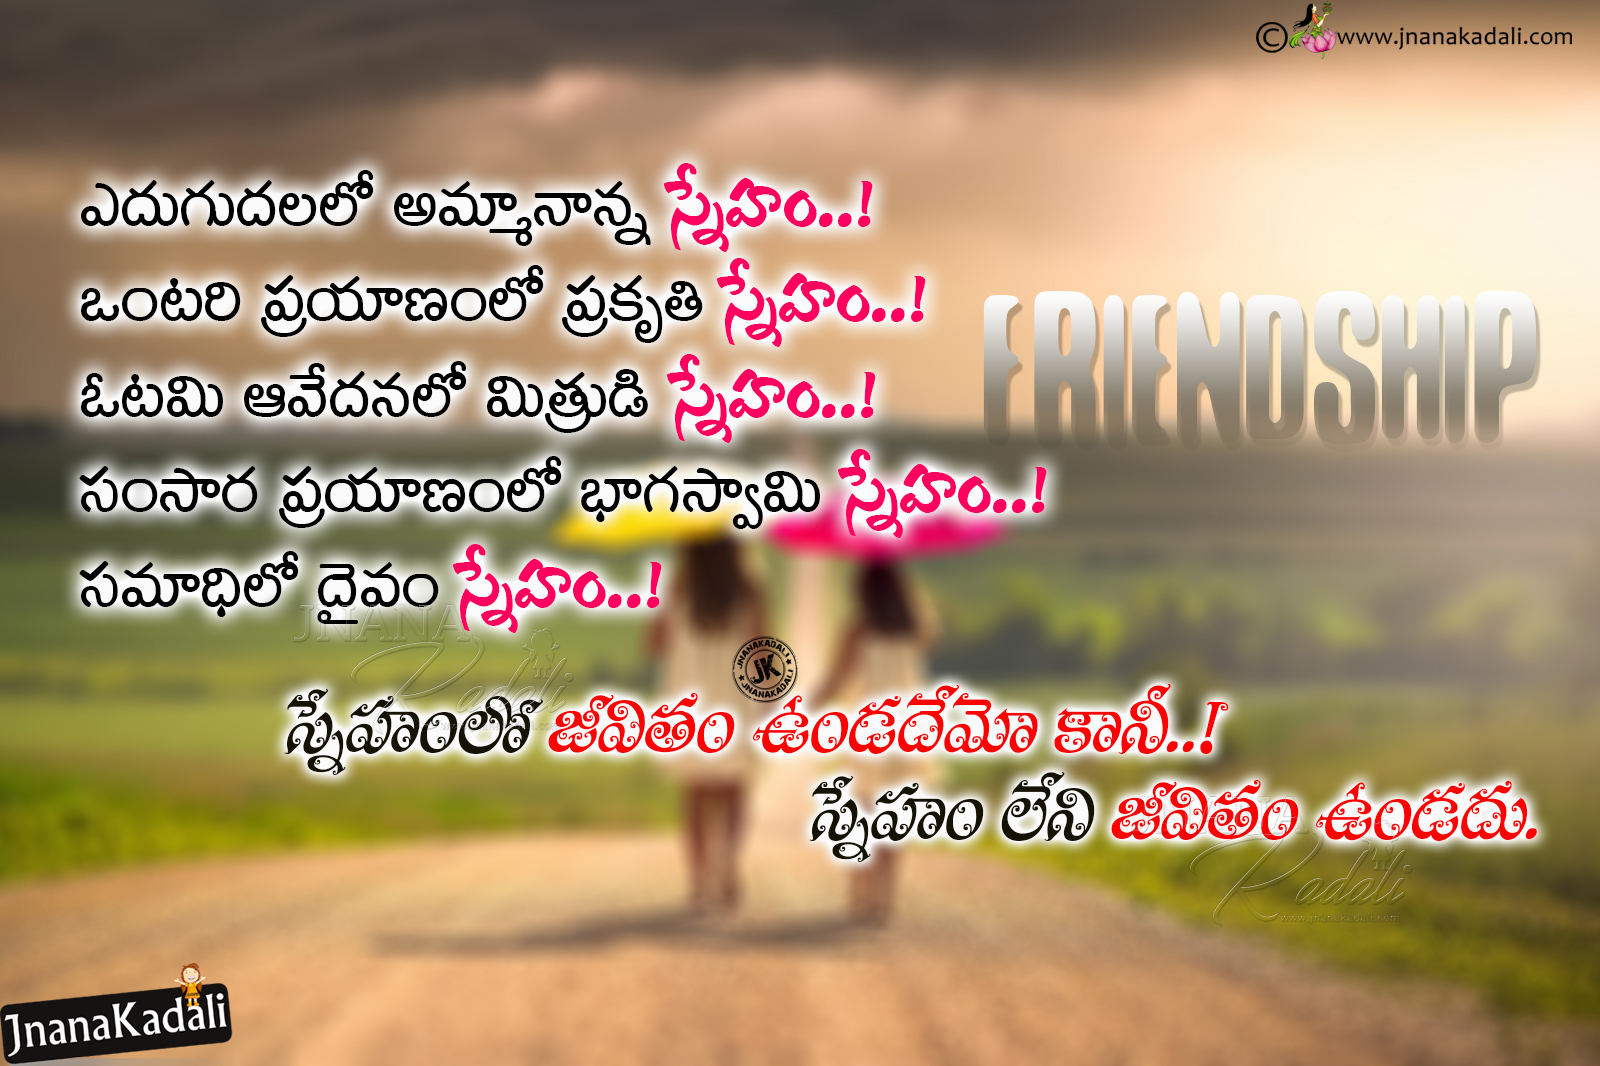 Touching Quotes About Friendship Cool Latest Best Telugu Friendship Heart Touching Quotes With Cute